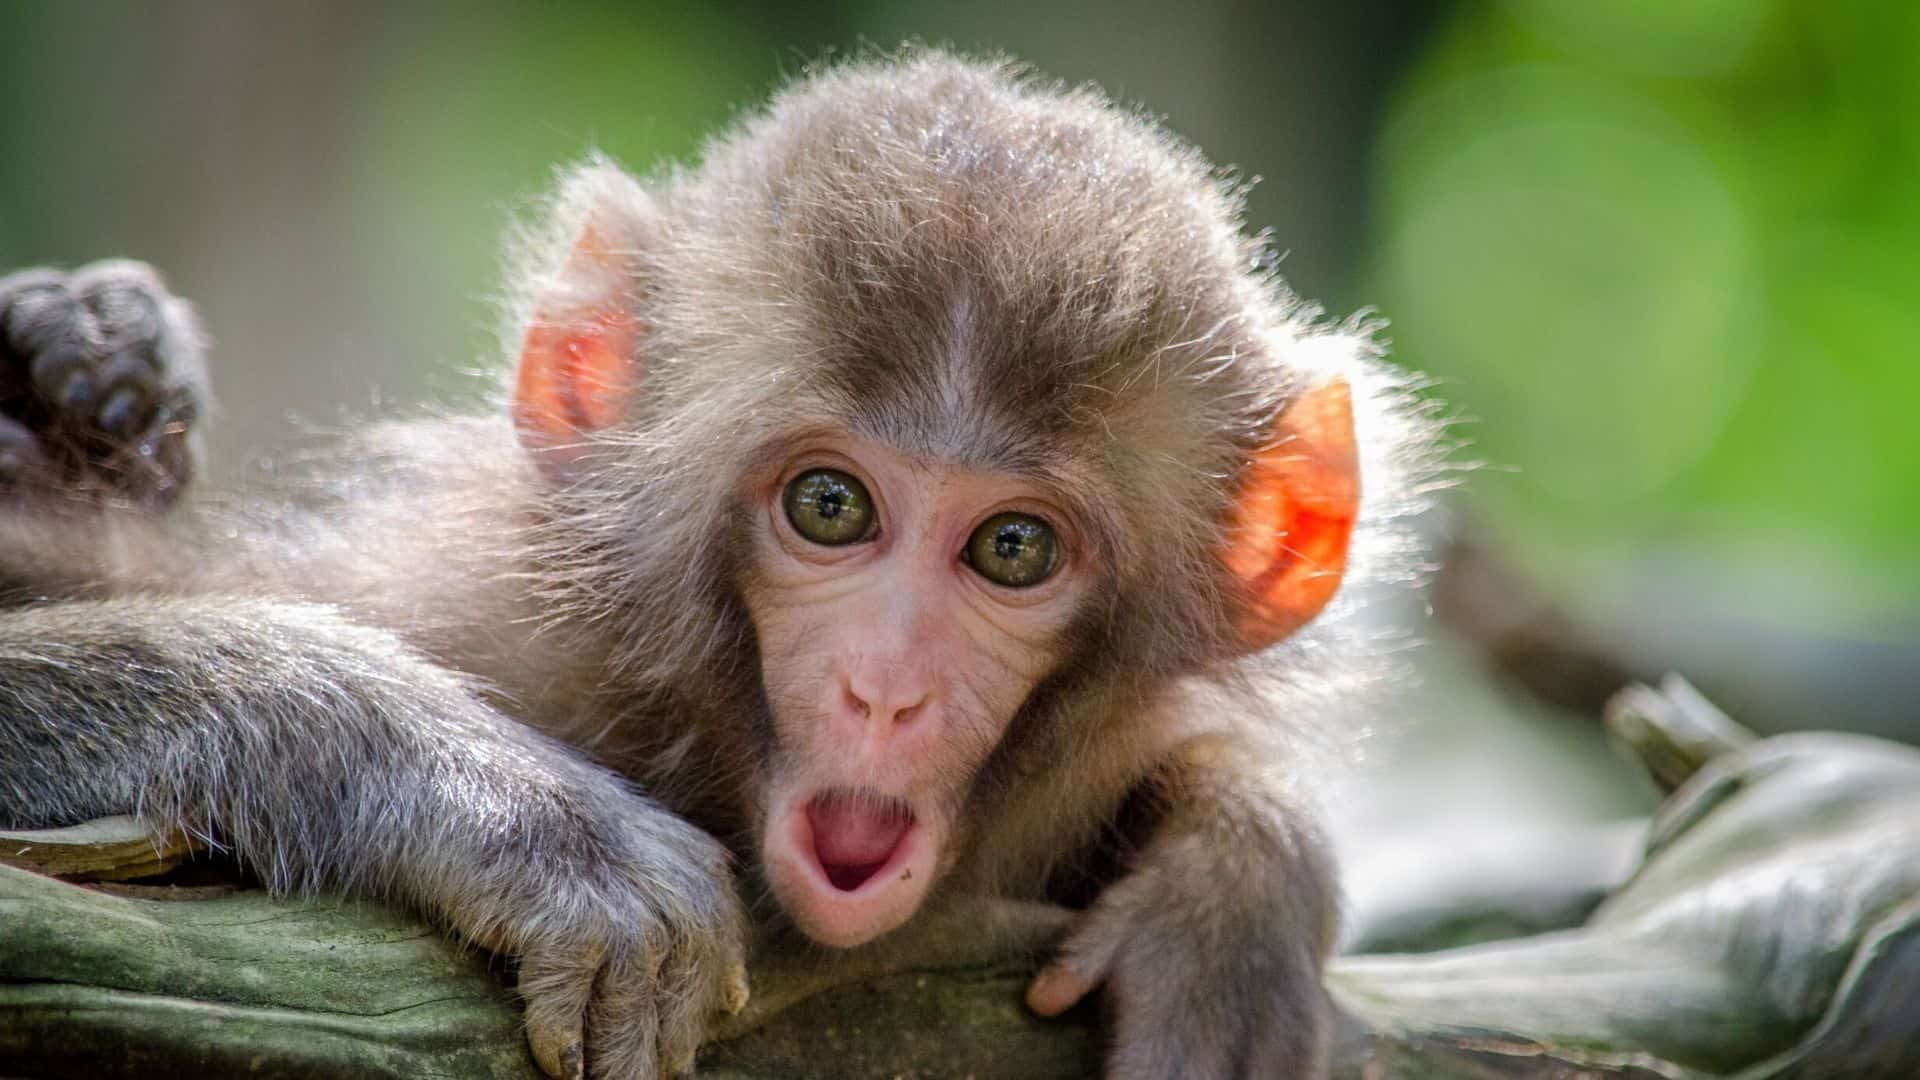 A monkey gasping with shock at the wonders of digital marketing.